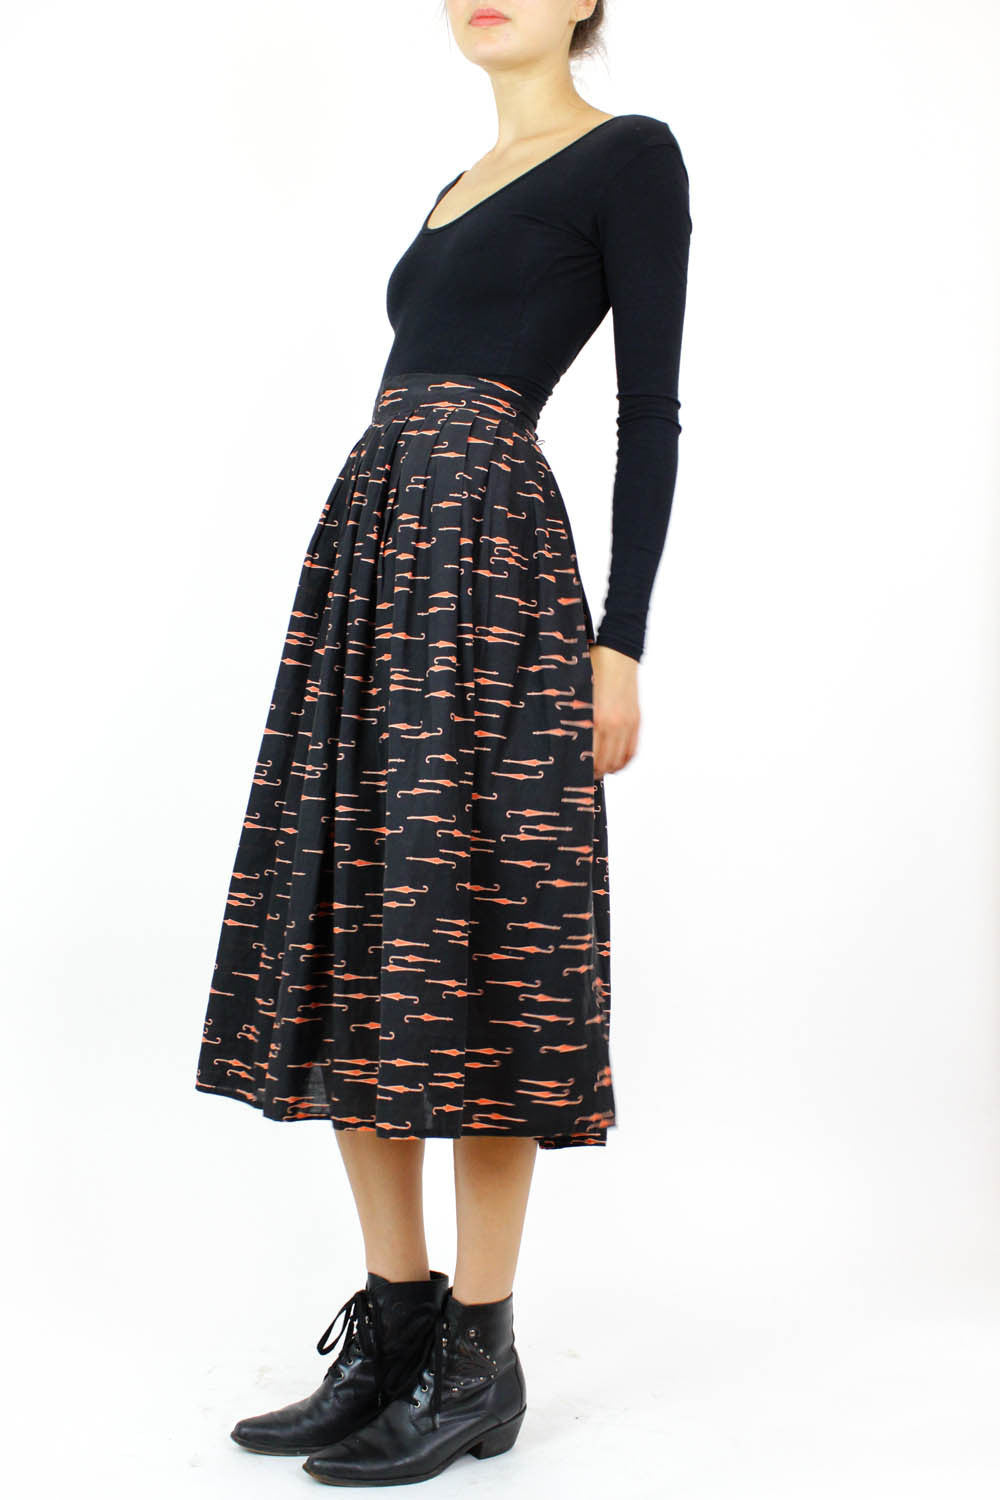 Umbrella skirt M/L